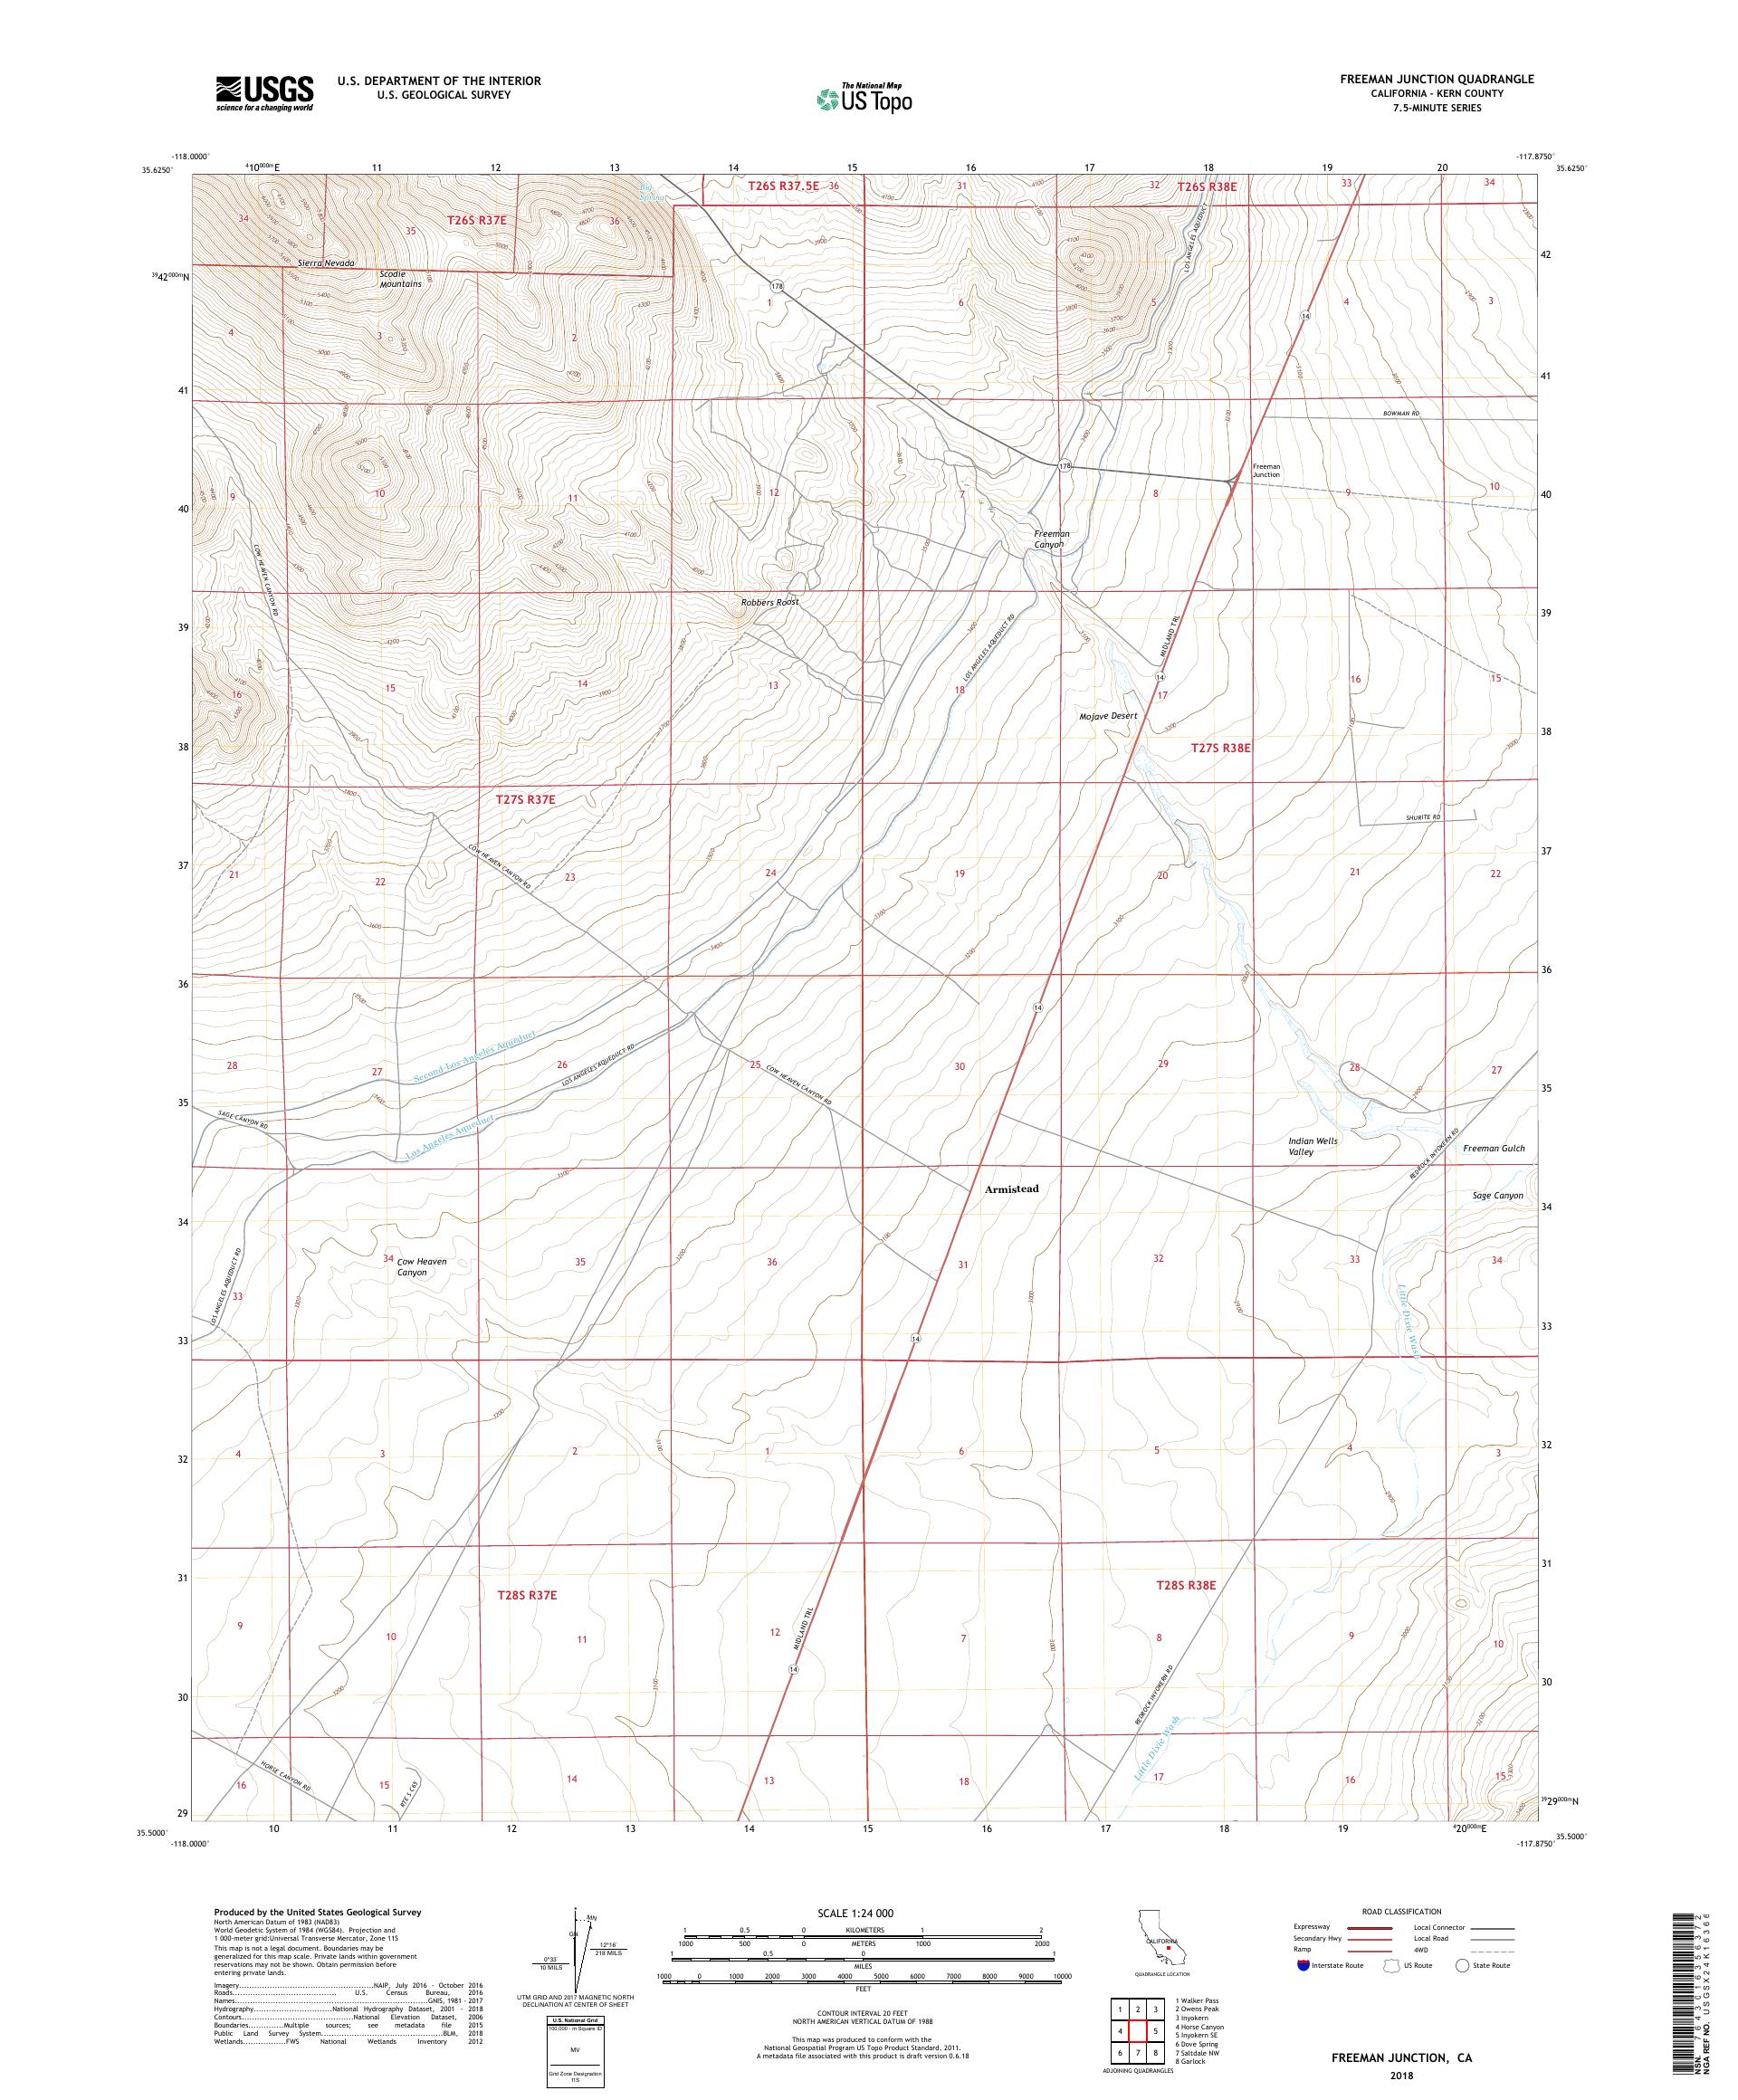 MyTopo Freeman Junction, California USGS Quad Topo Map